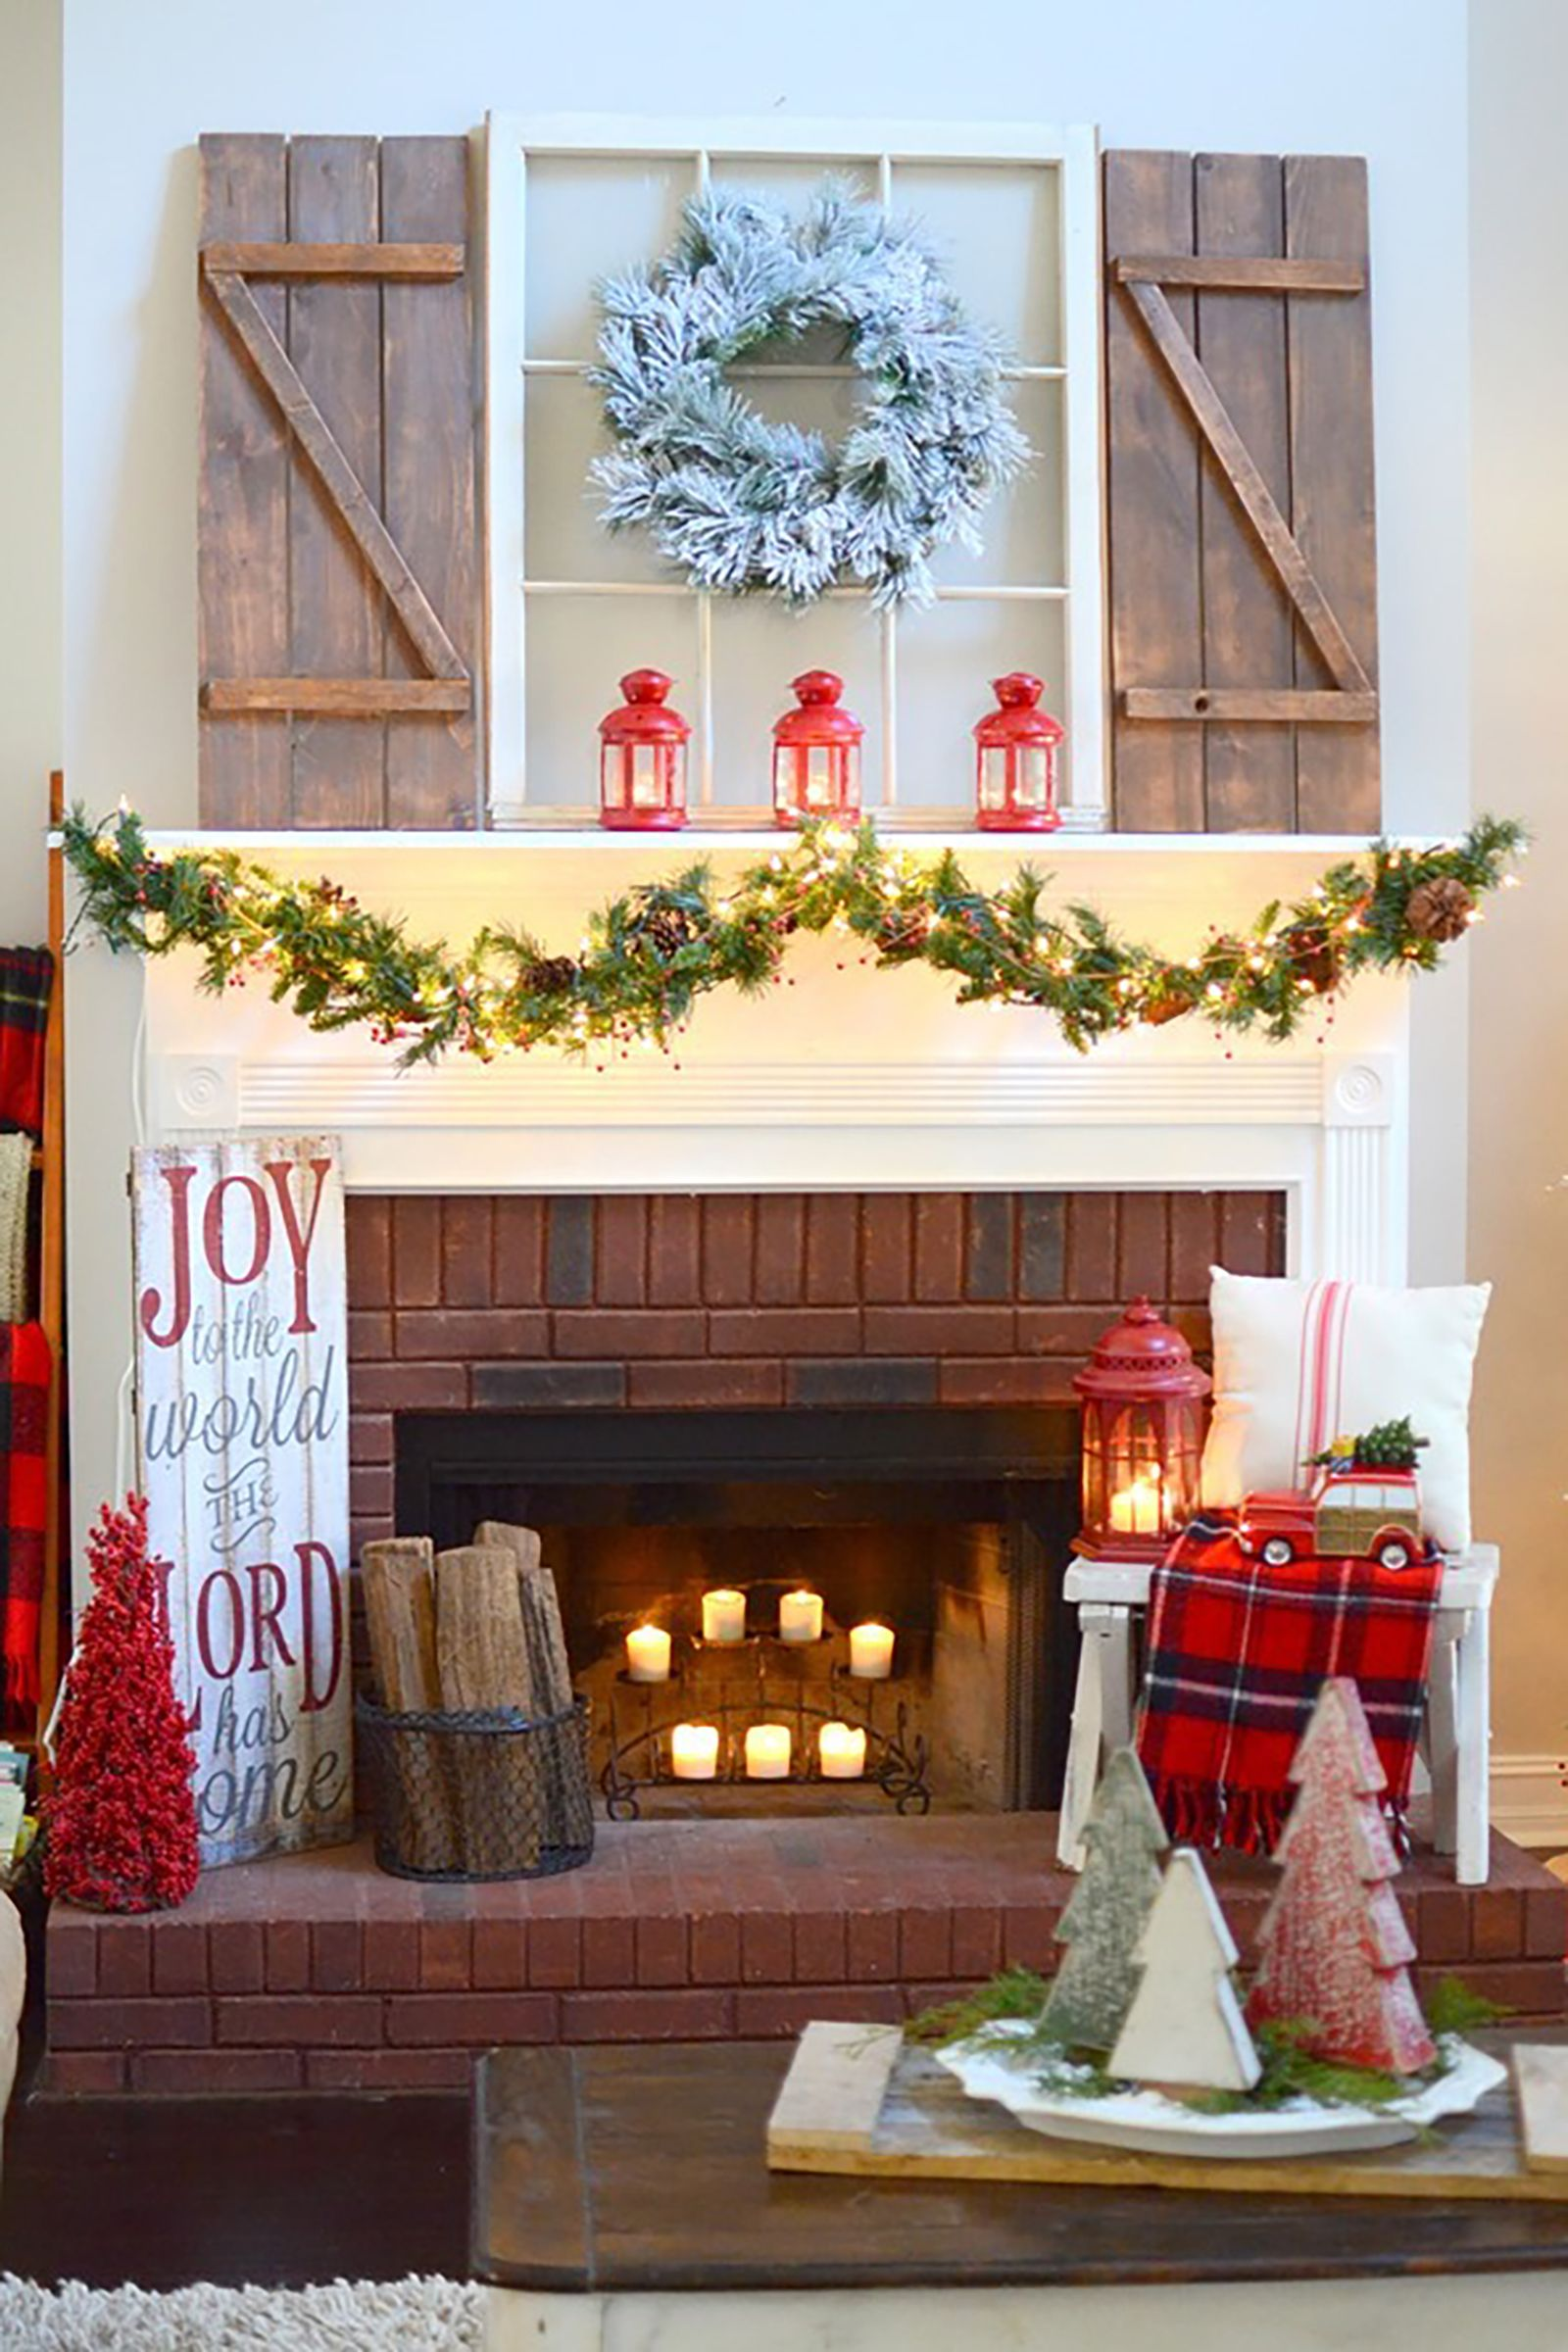 50 Christmas Mantel Decorations Ideas For Holiday Fireplace Decorating